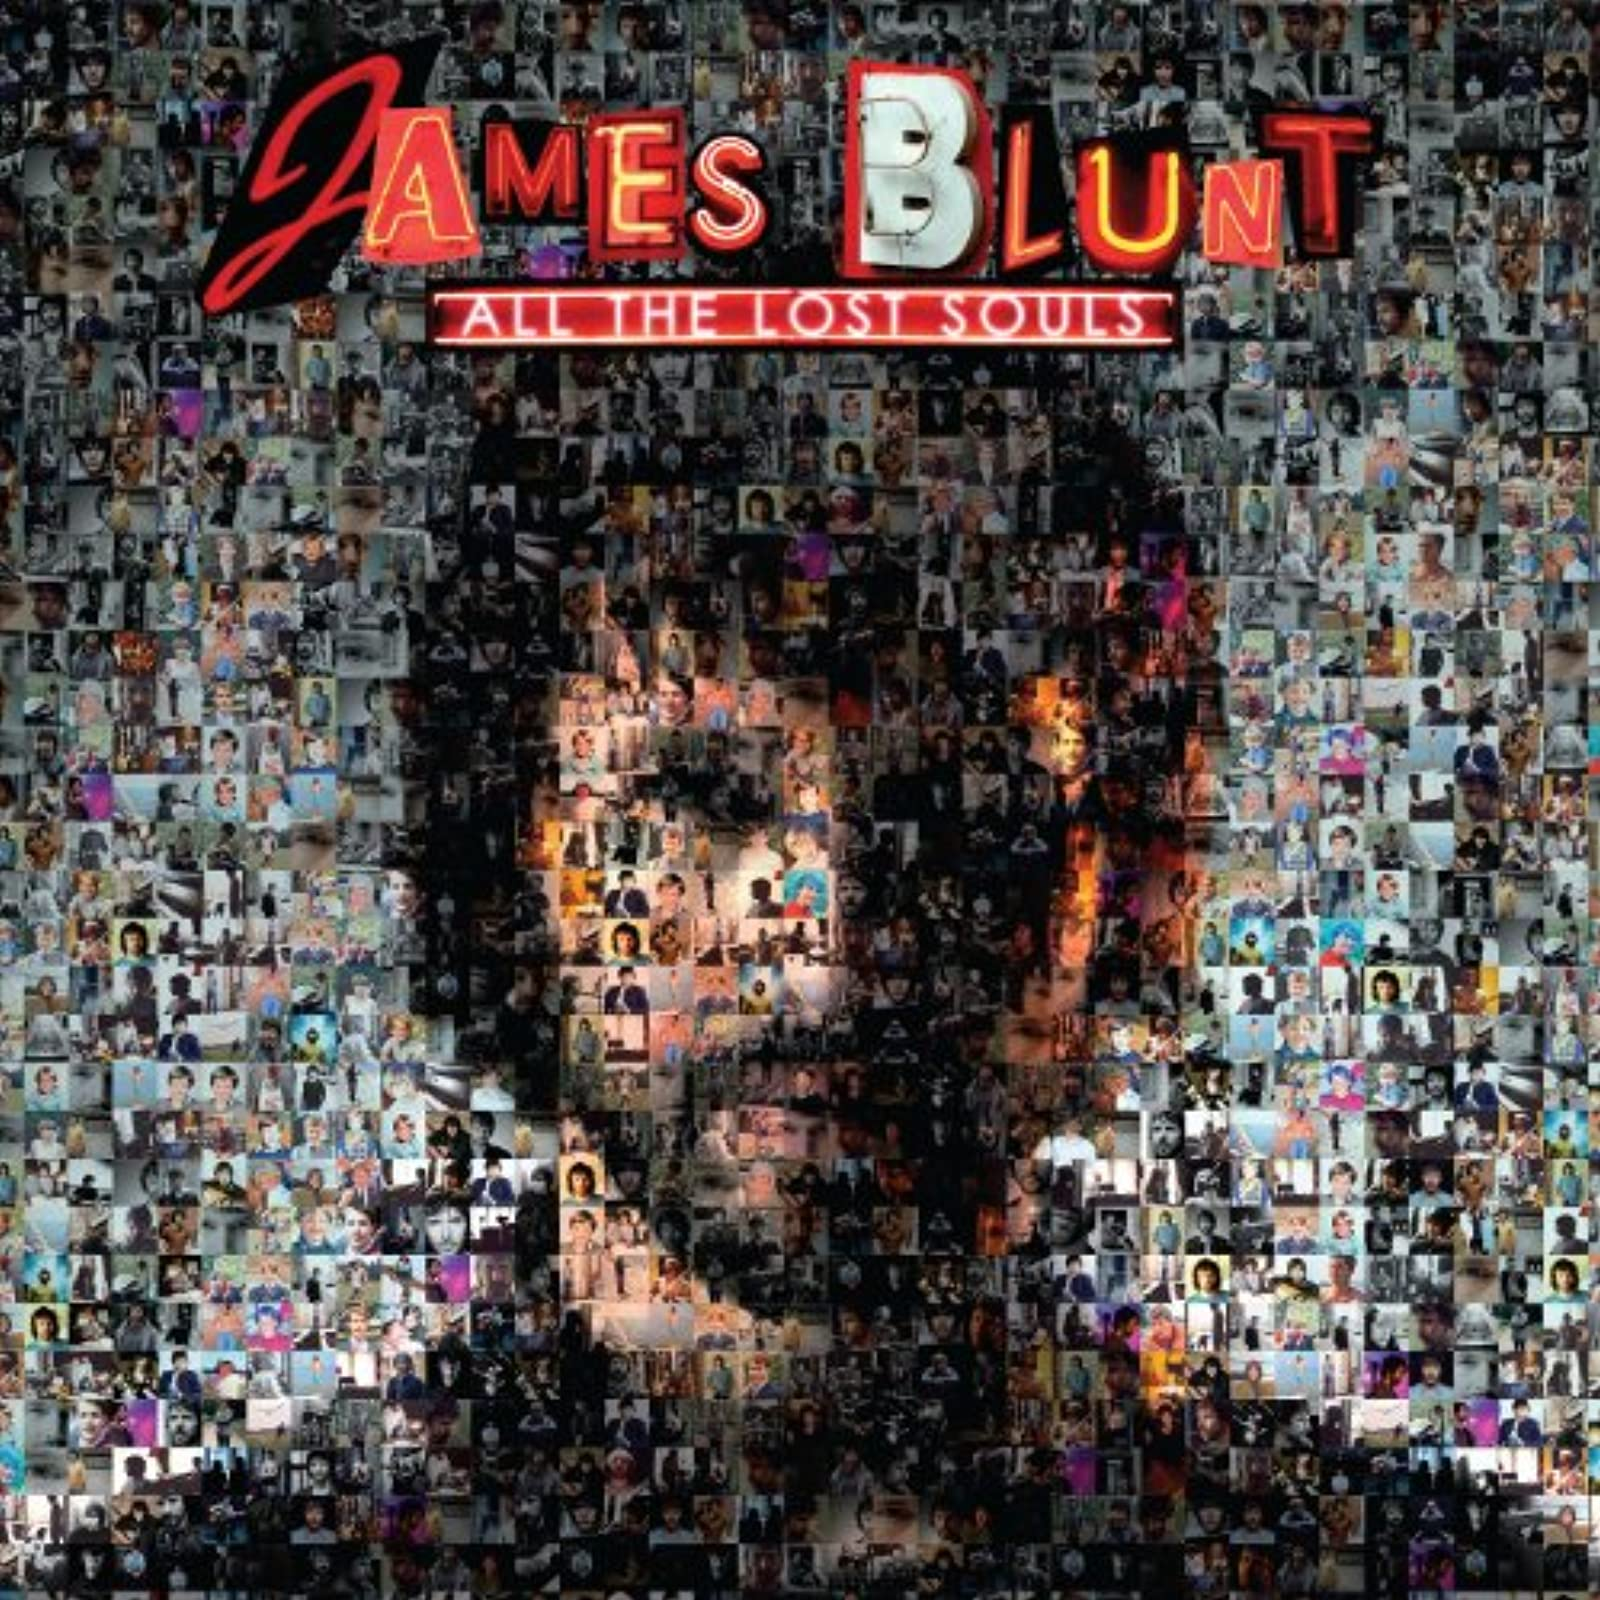 All The Lost Souls By James Blunt On Audio CD Album 2007